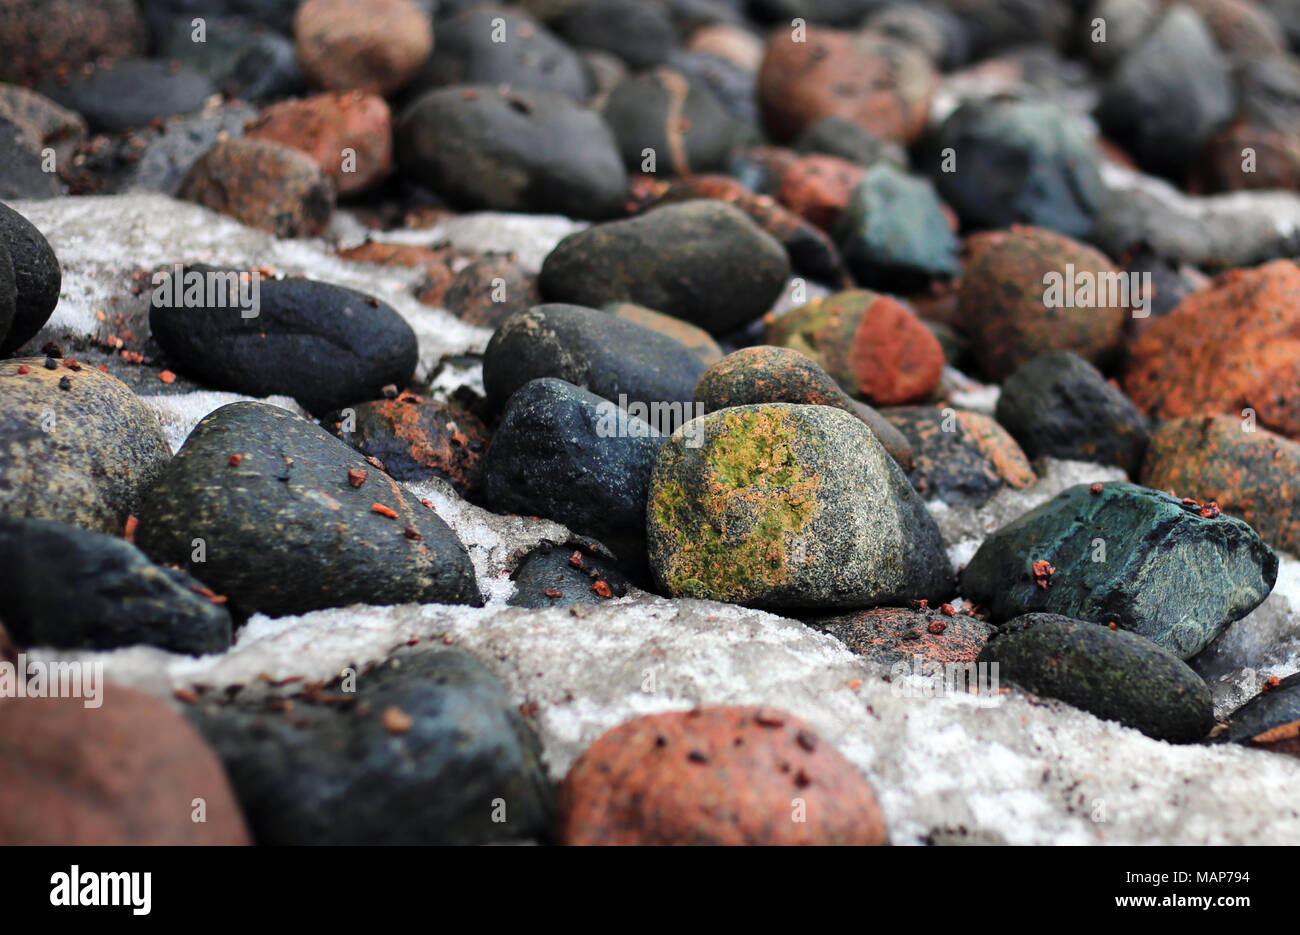 Colorful rocks laying on a ground. In between the stones there is some snow and ice. Photo is taken in Finland during spring season. Stock Photo